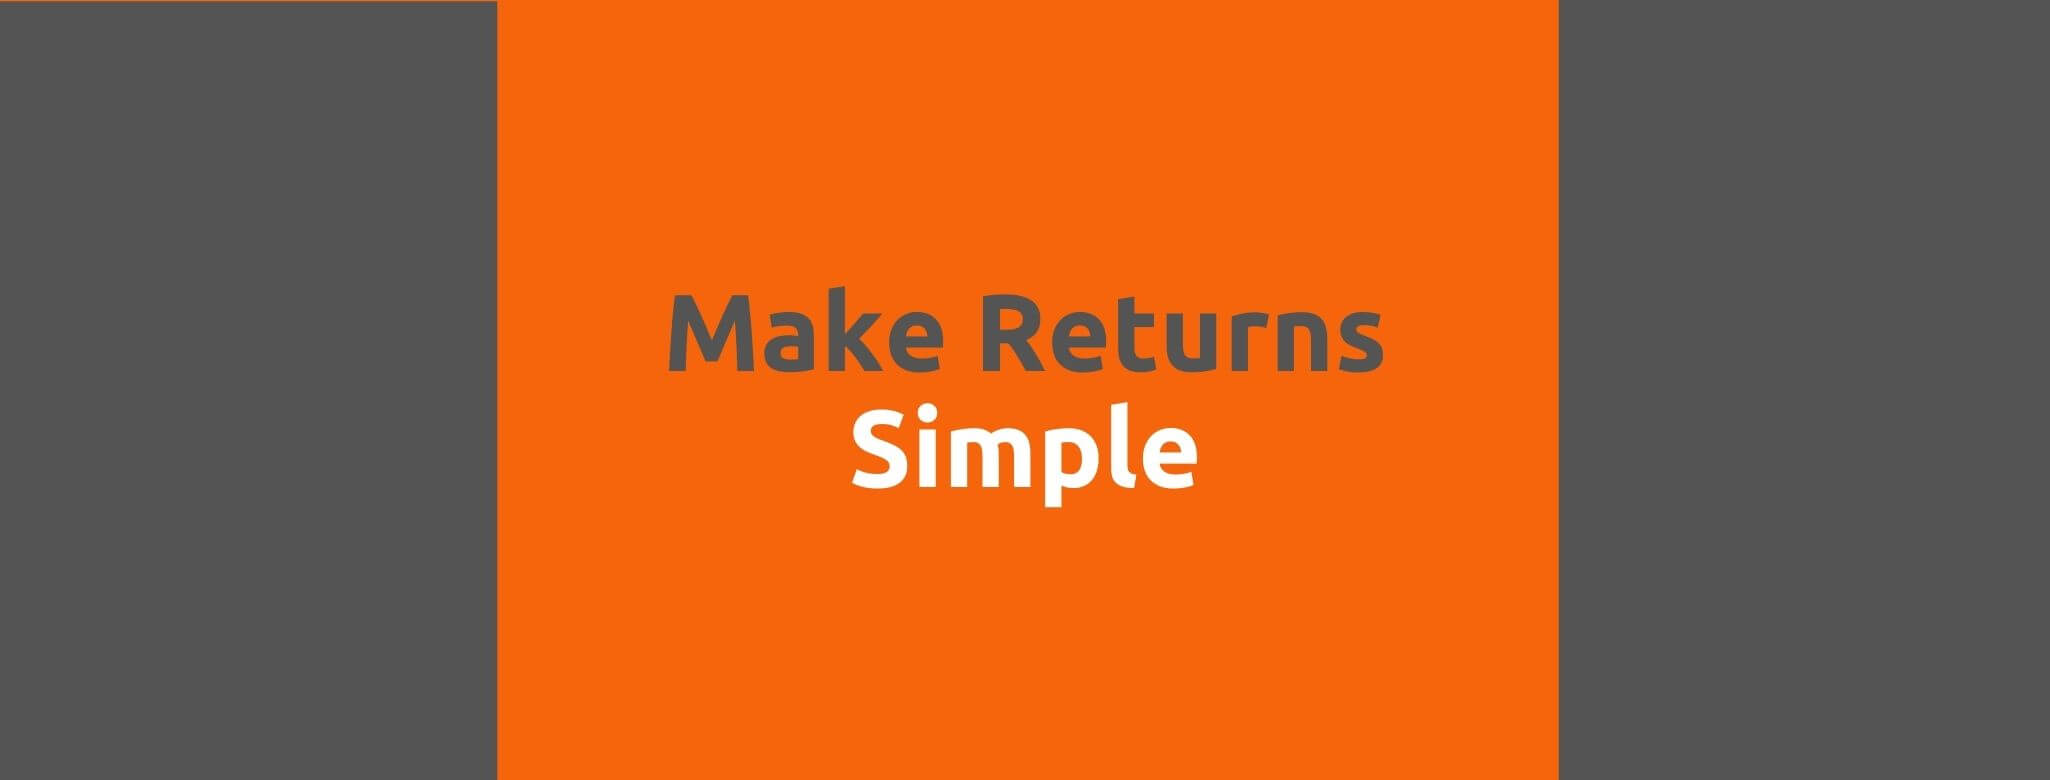 Make Returns Simple - 35 Things Every Seller Should Do to Offer Great Customer Service - Replyco Helpdesk Software for eCommerce